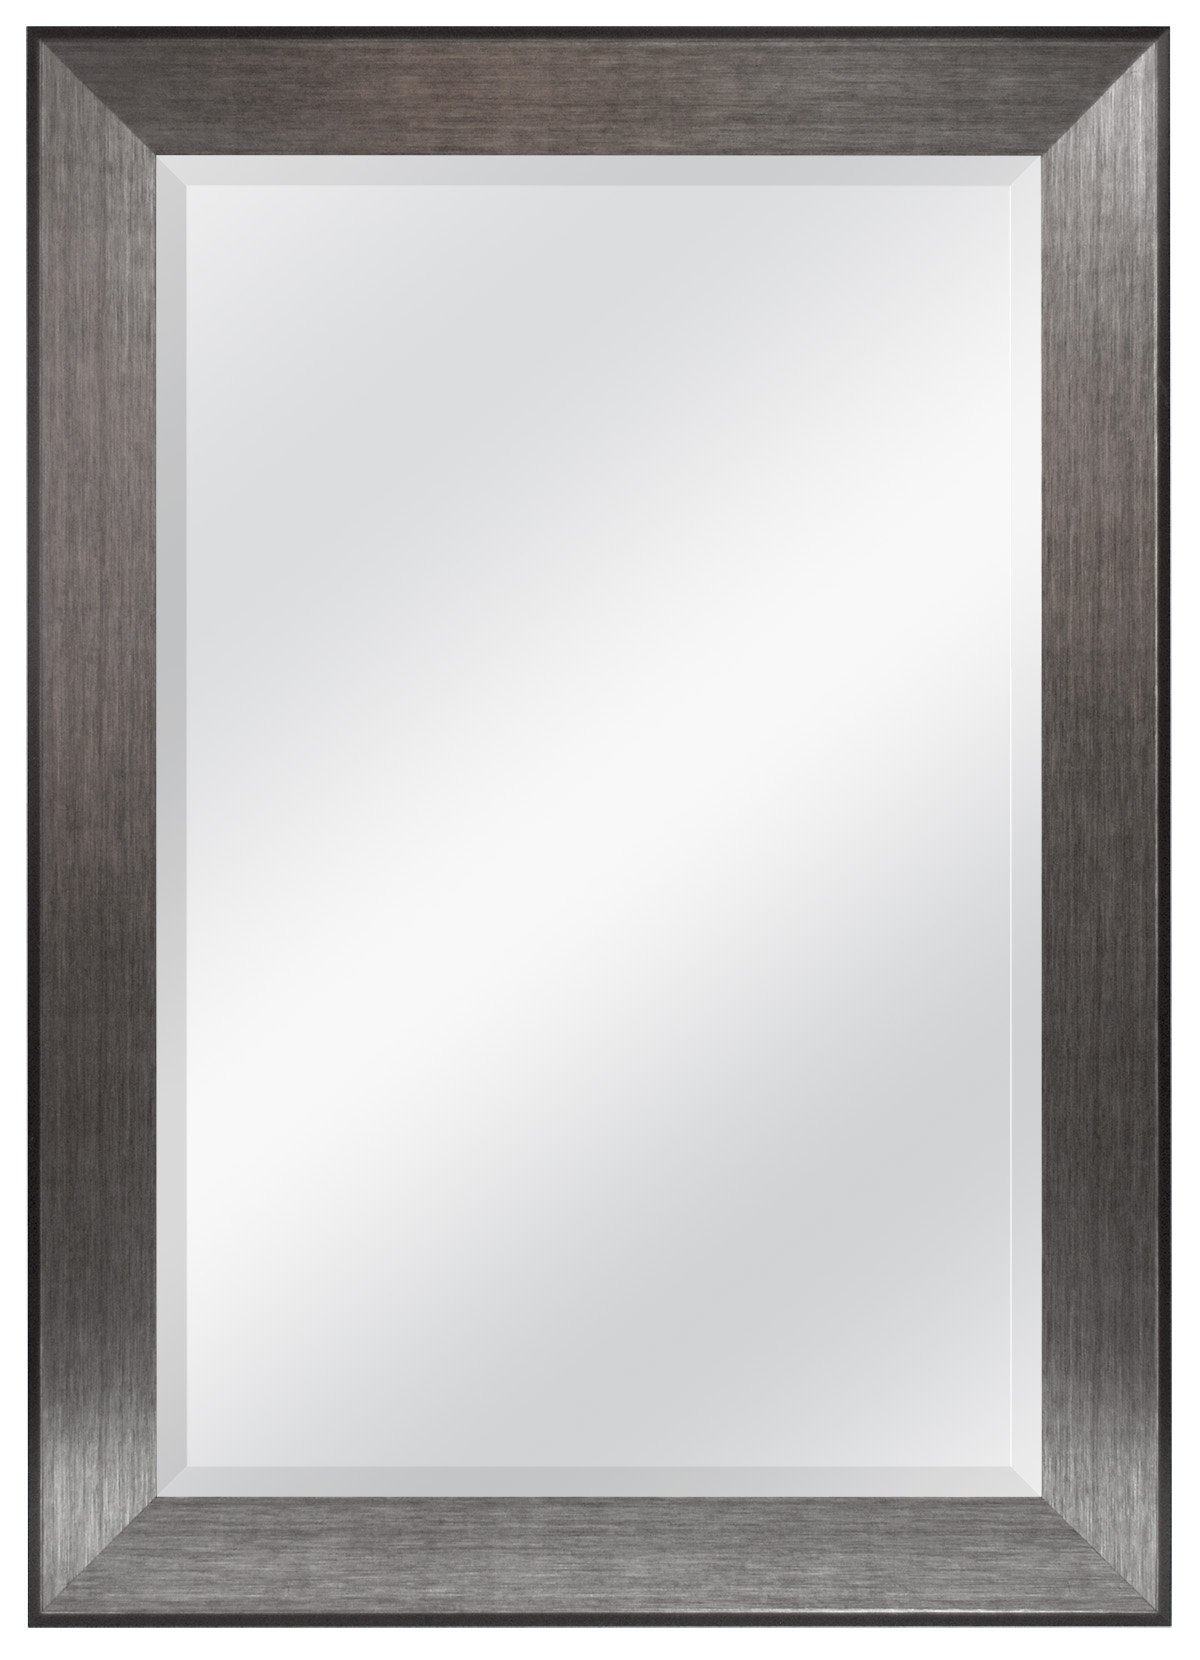 MCS 24x36 Two-Tone Wall Mirror, 30.25x40.25 Inch Overall Size, Brushed Pewter (20678) by MCS (Image #1)